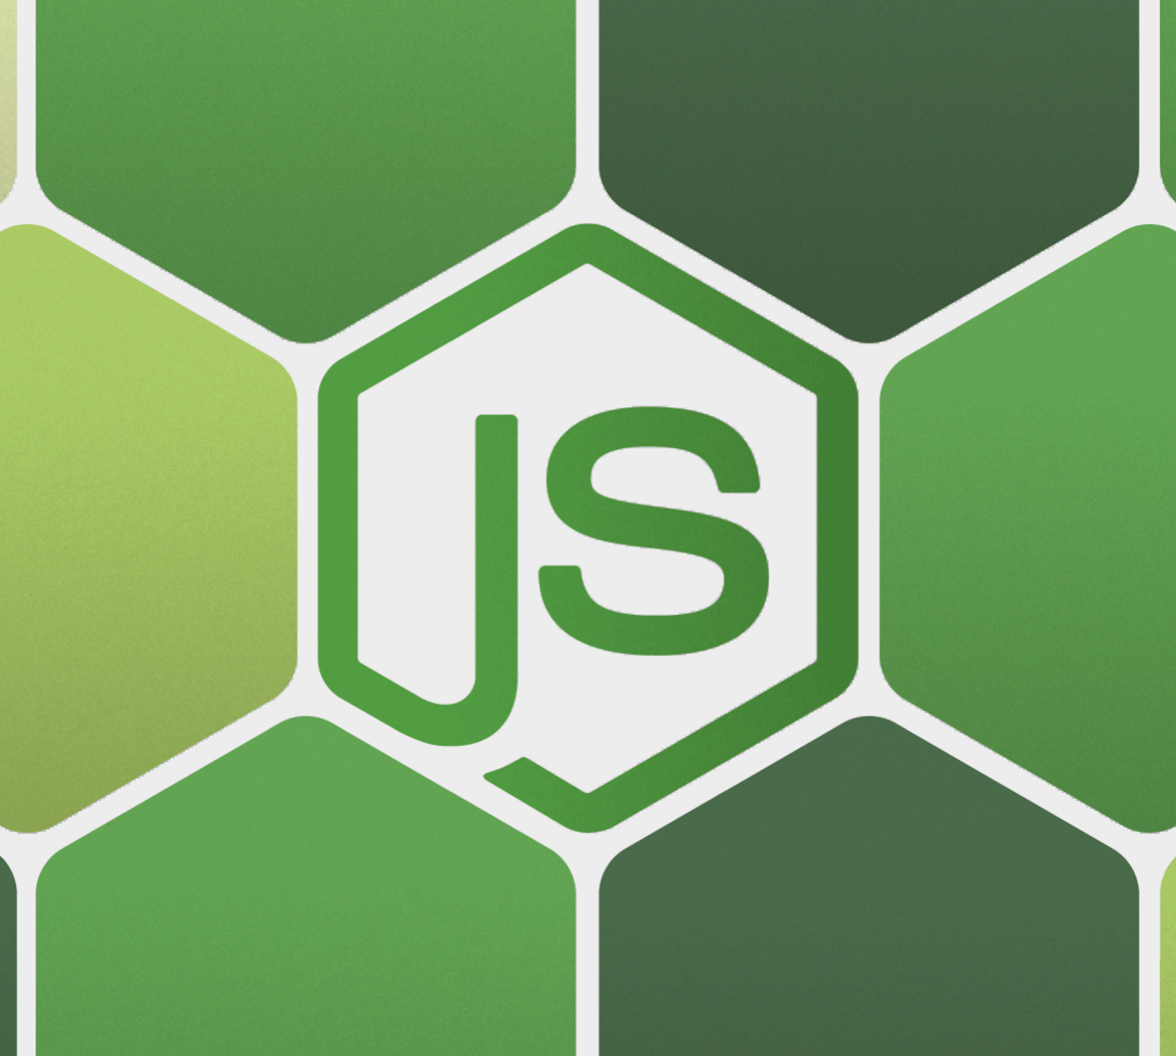 Node js and Express Tutorial: Building and Securing RESTful APIs